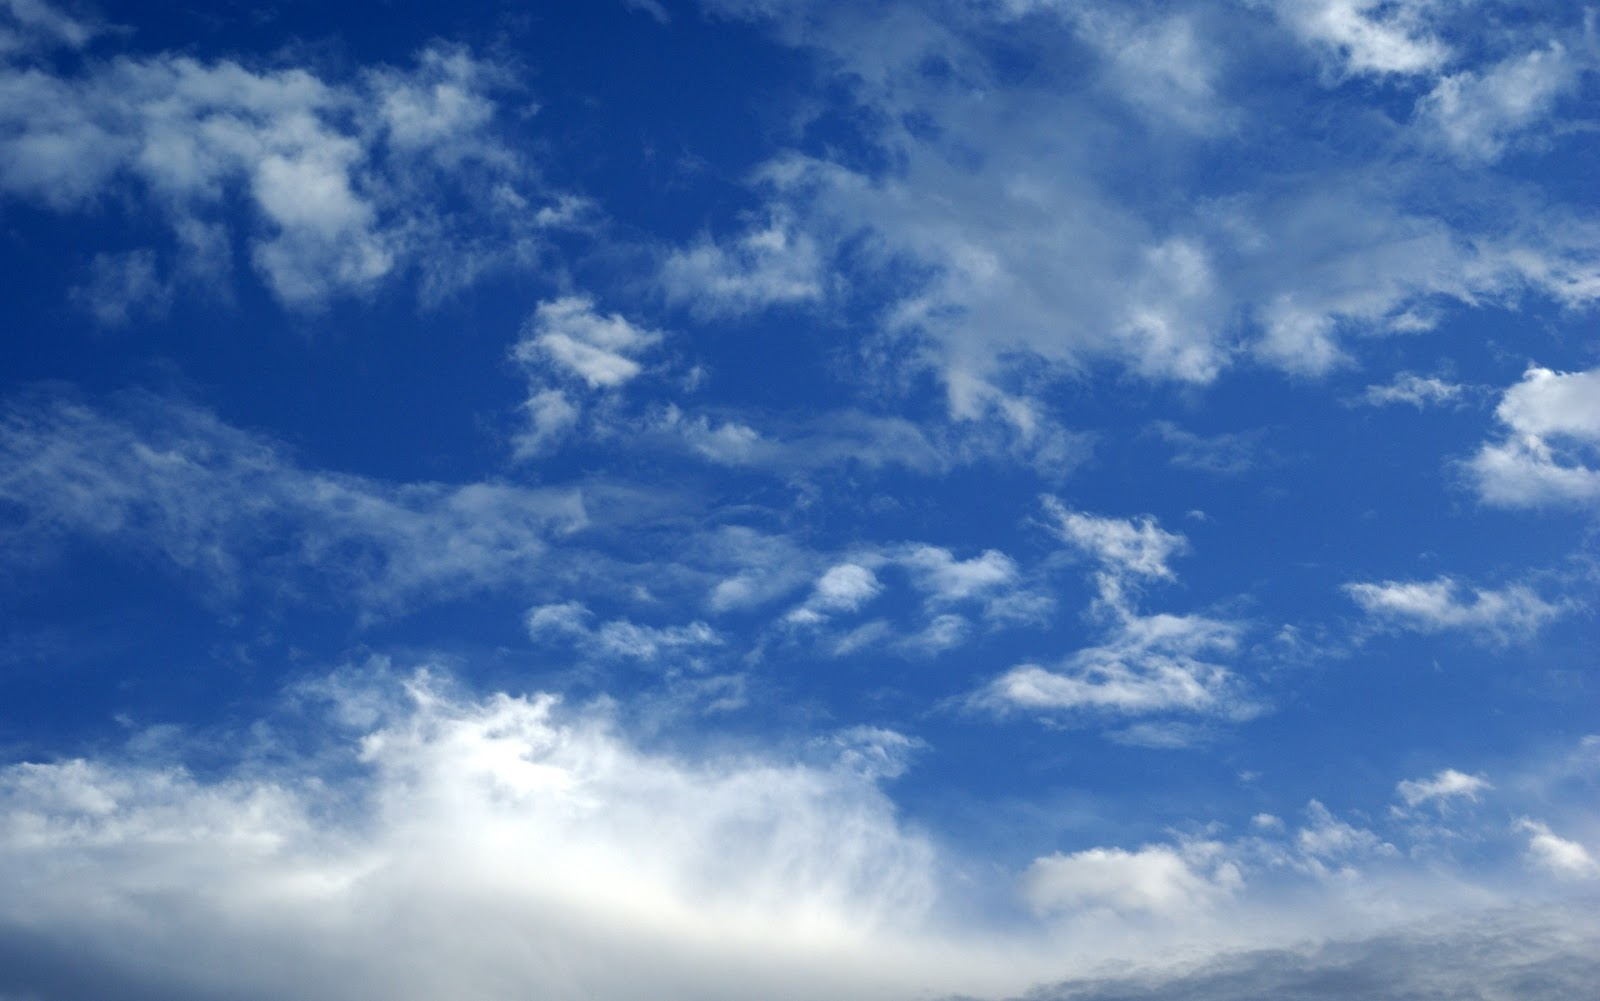 Blue Sky Free Stock Photos | Pictures In Stitches